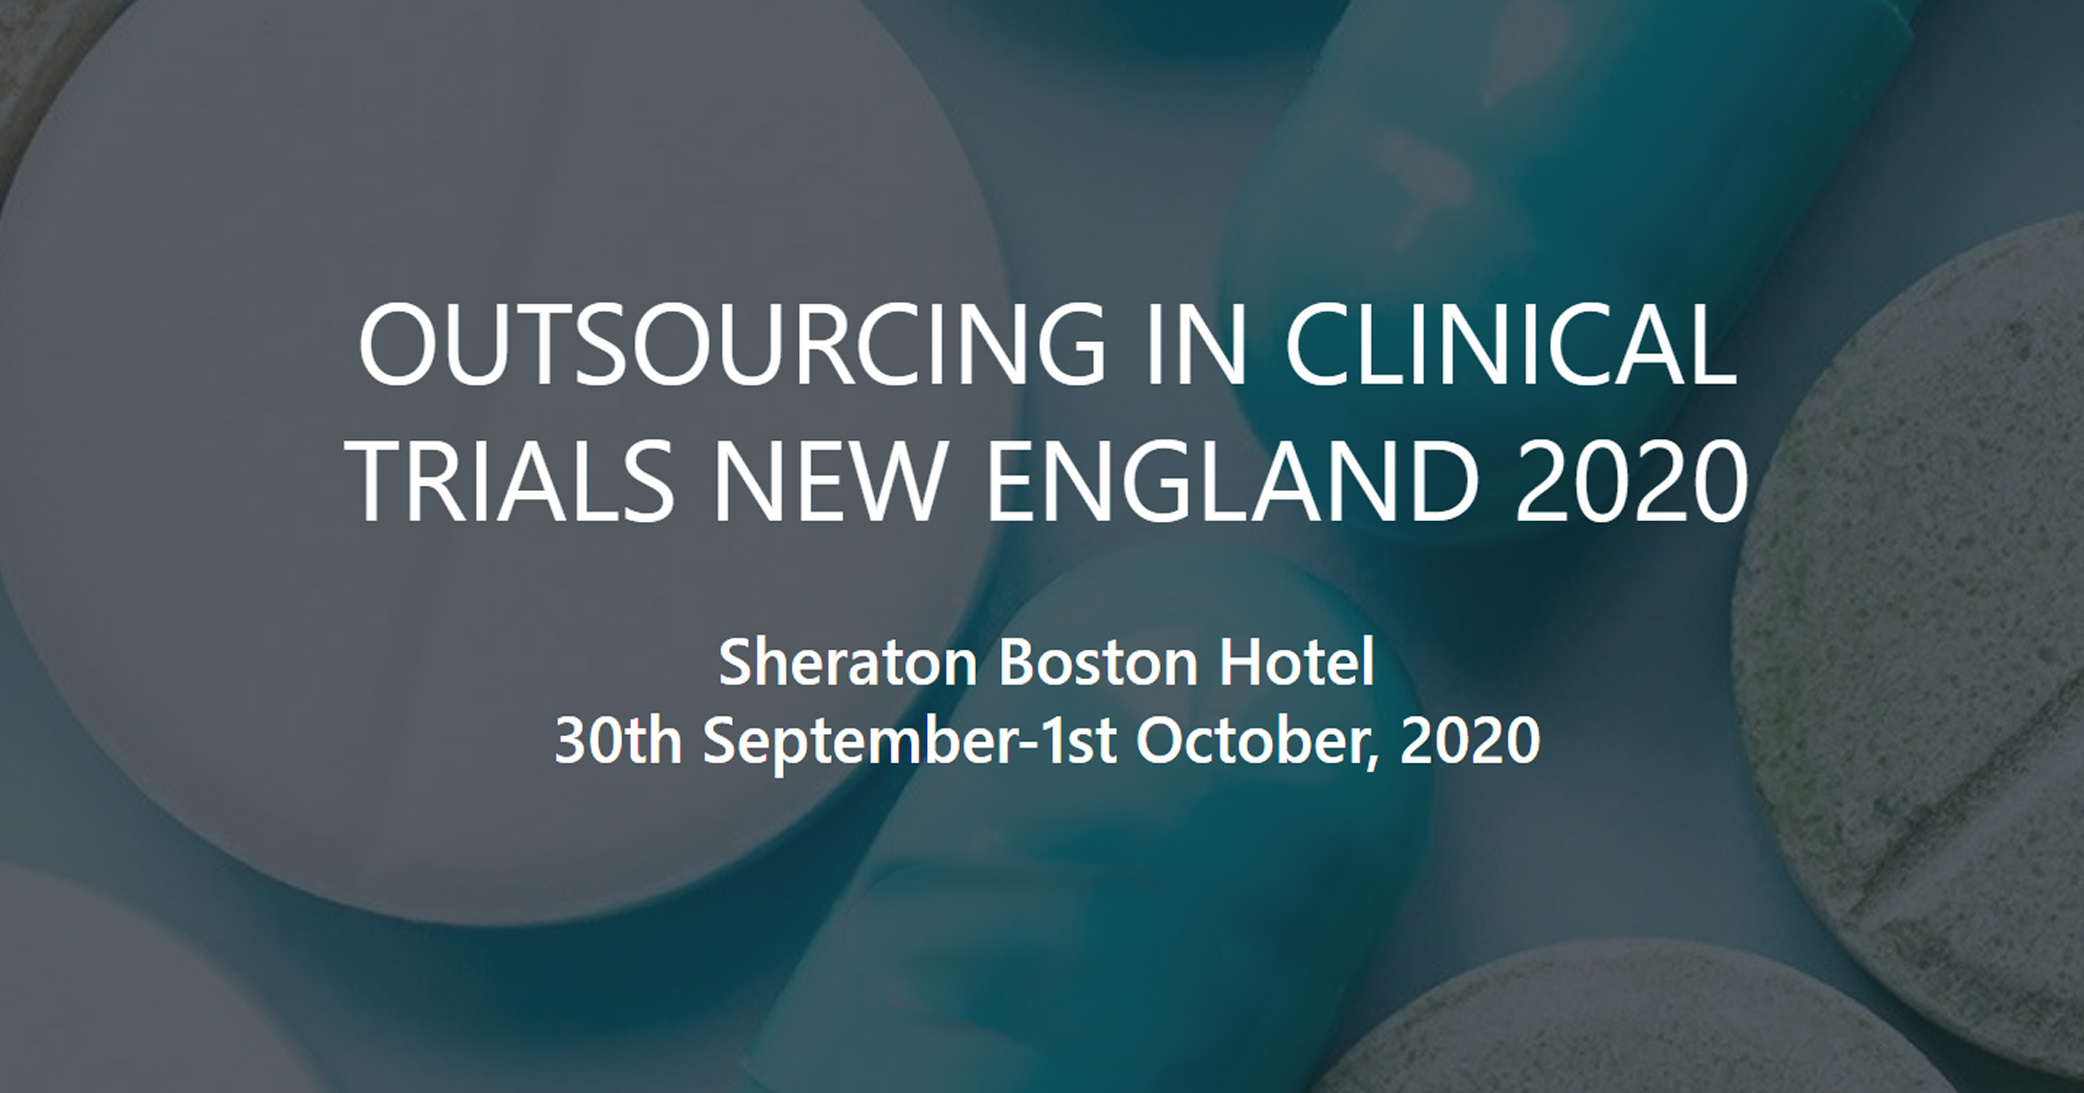 outsourcing in clinical trials New England